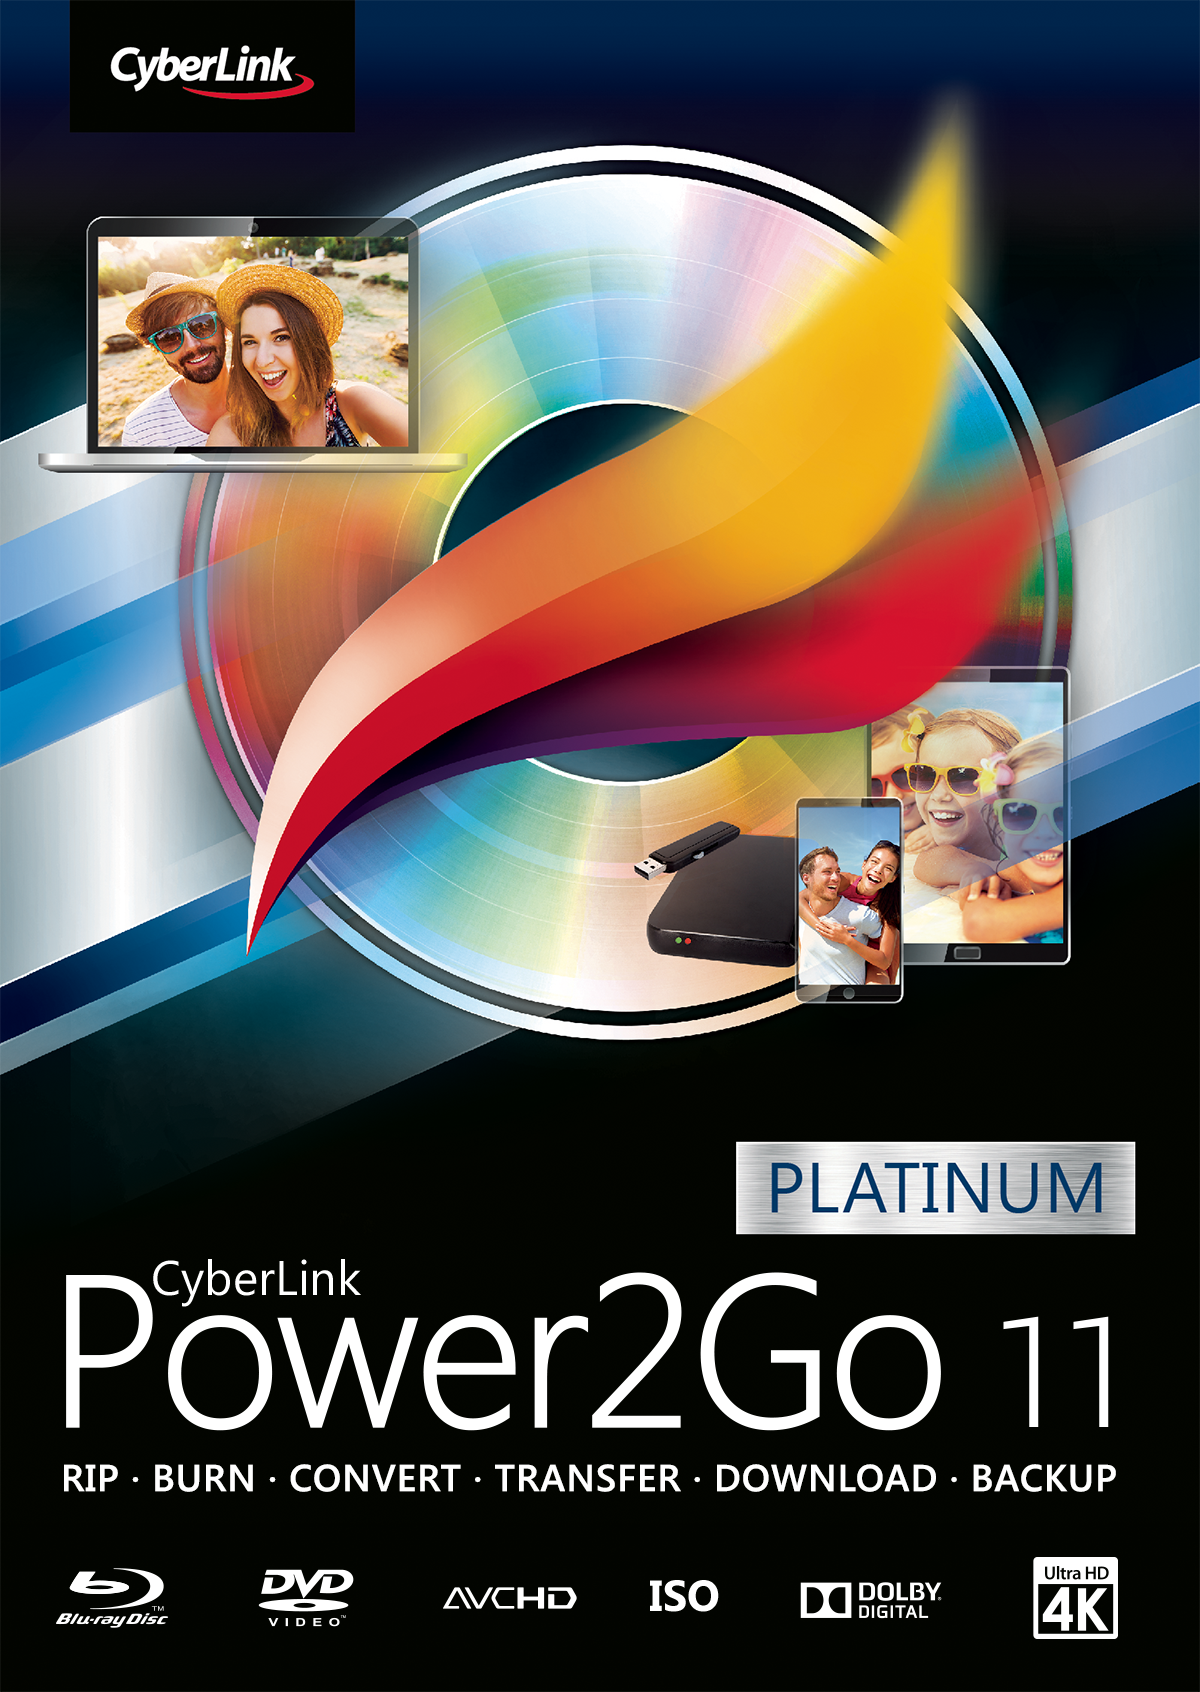 cyberlink-power2go-11-platinum-download